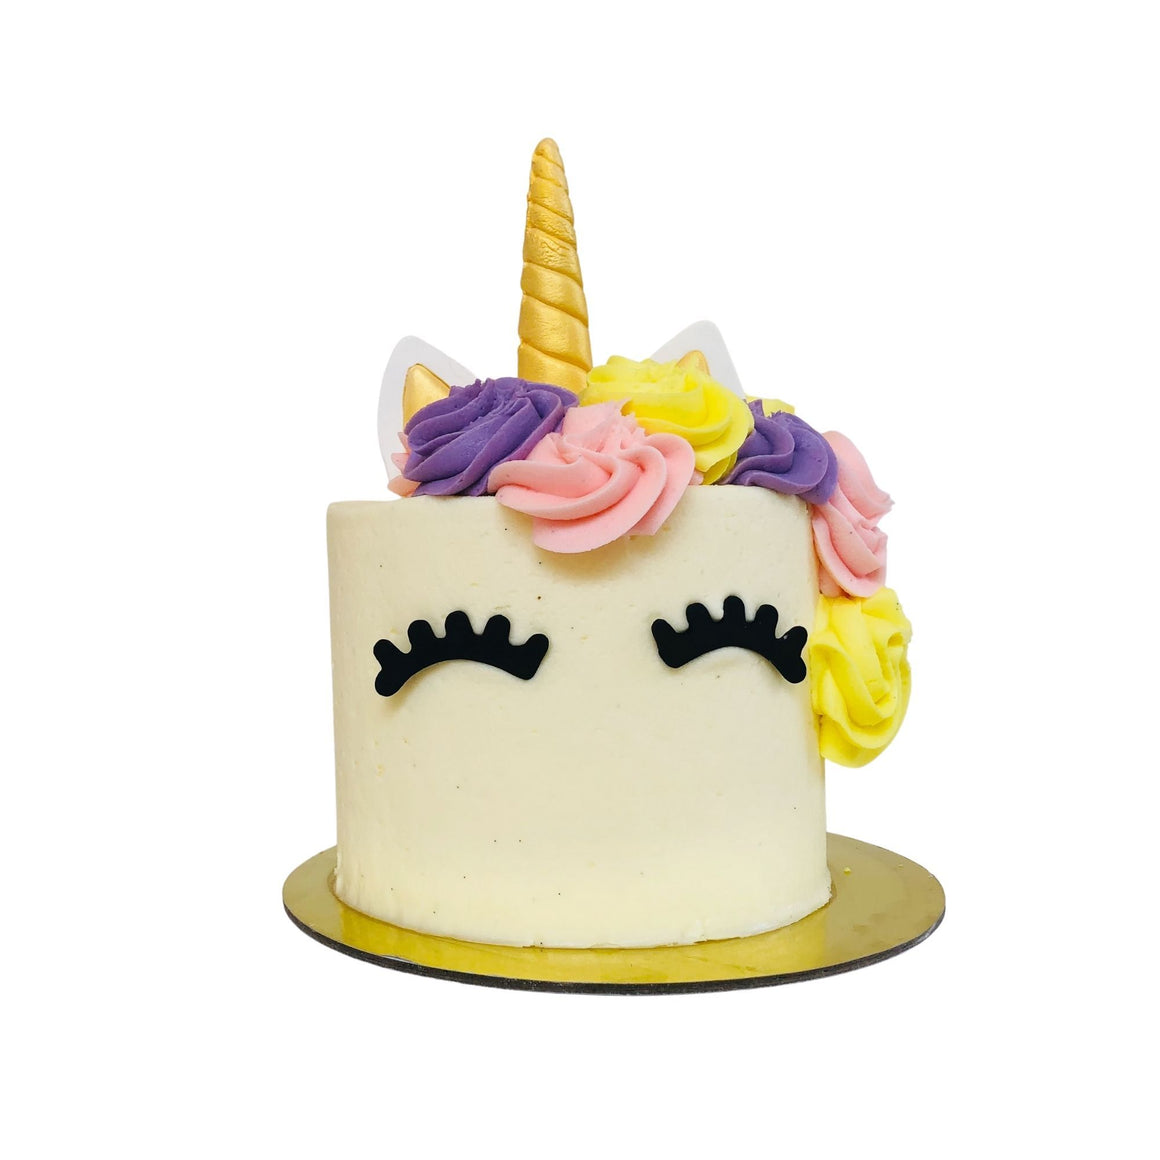 The Unicorn Cake - Original Special Occasion The Cupcake Queens